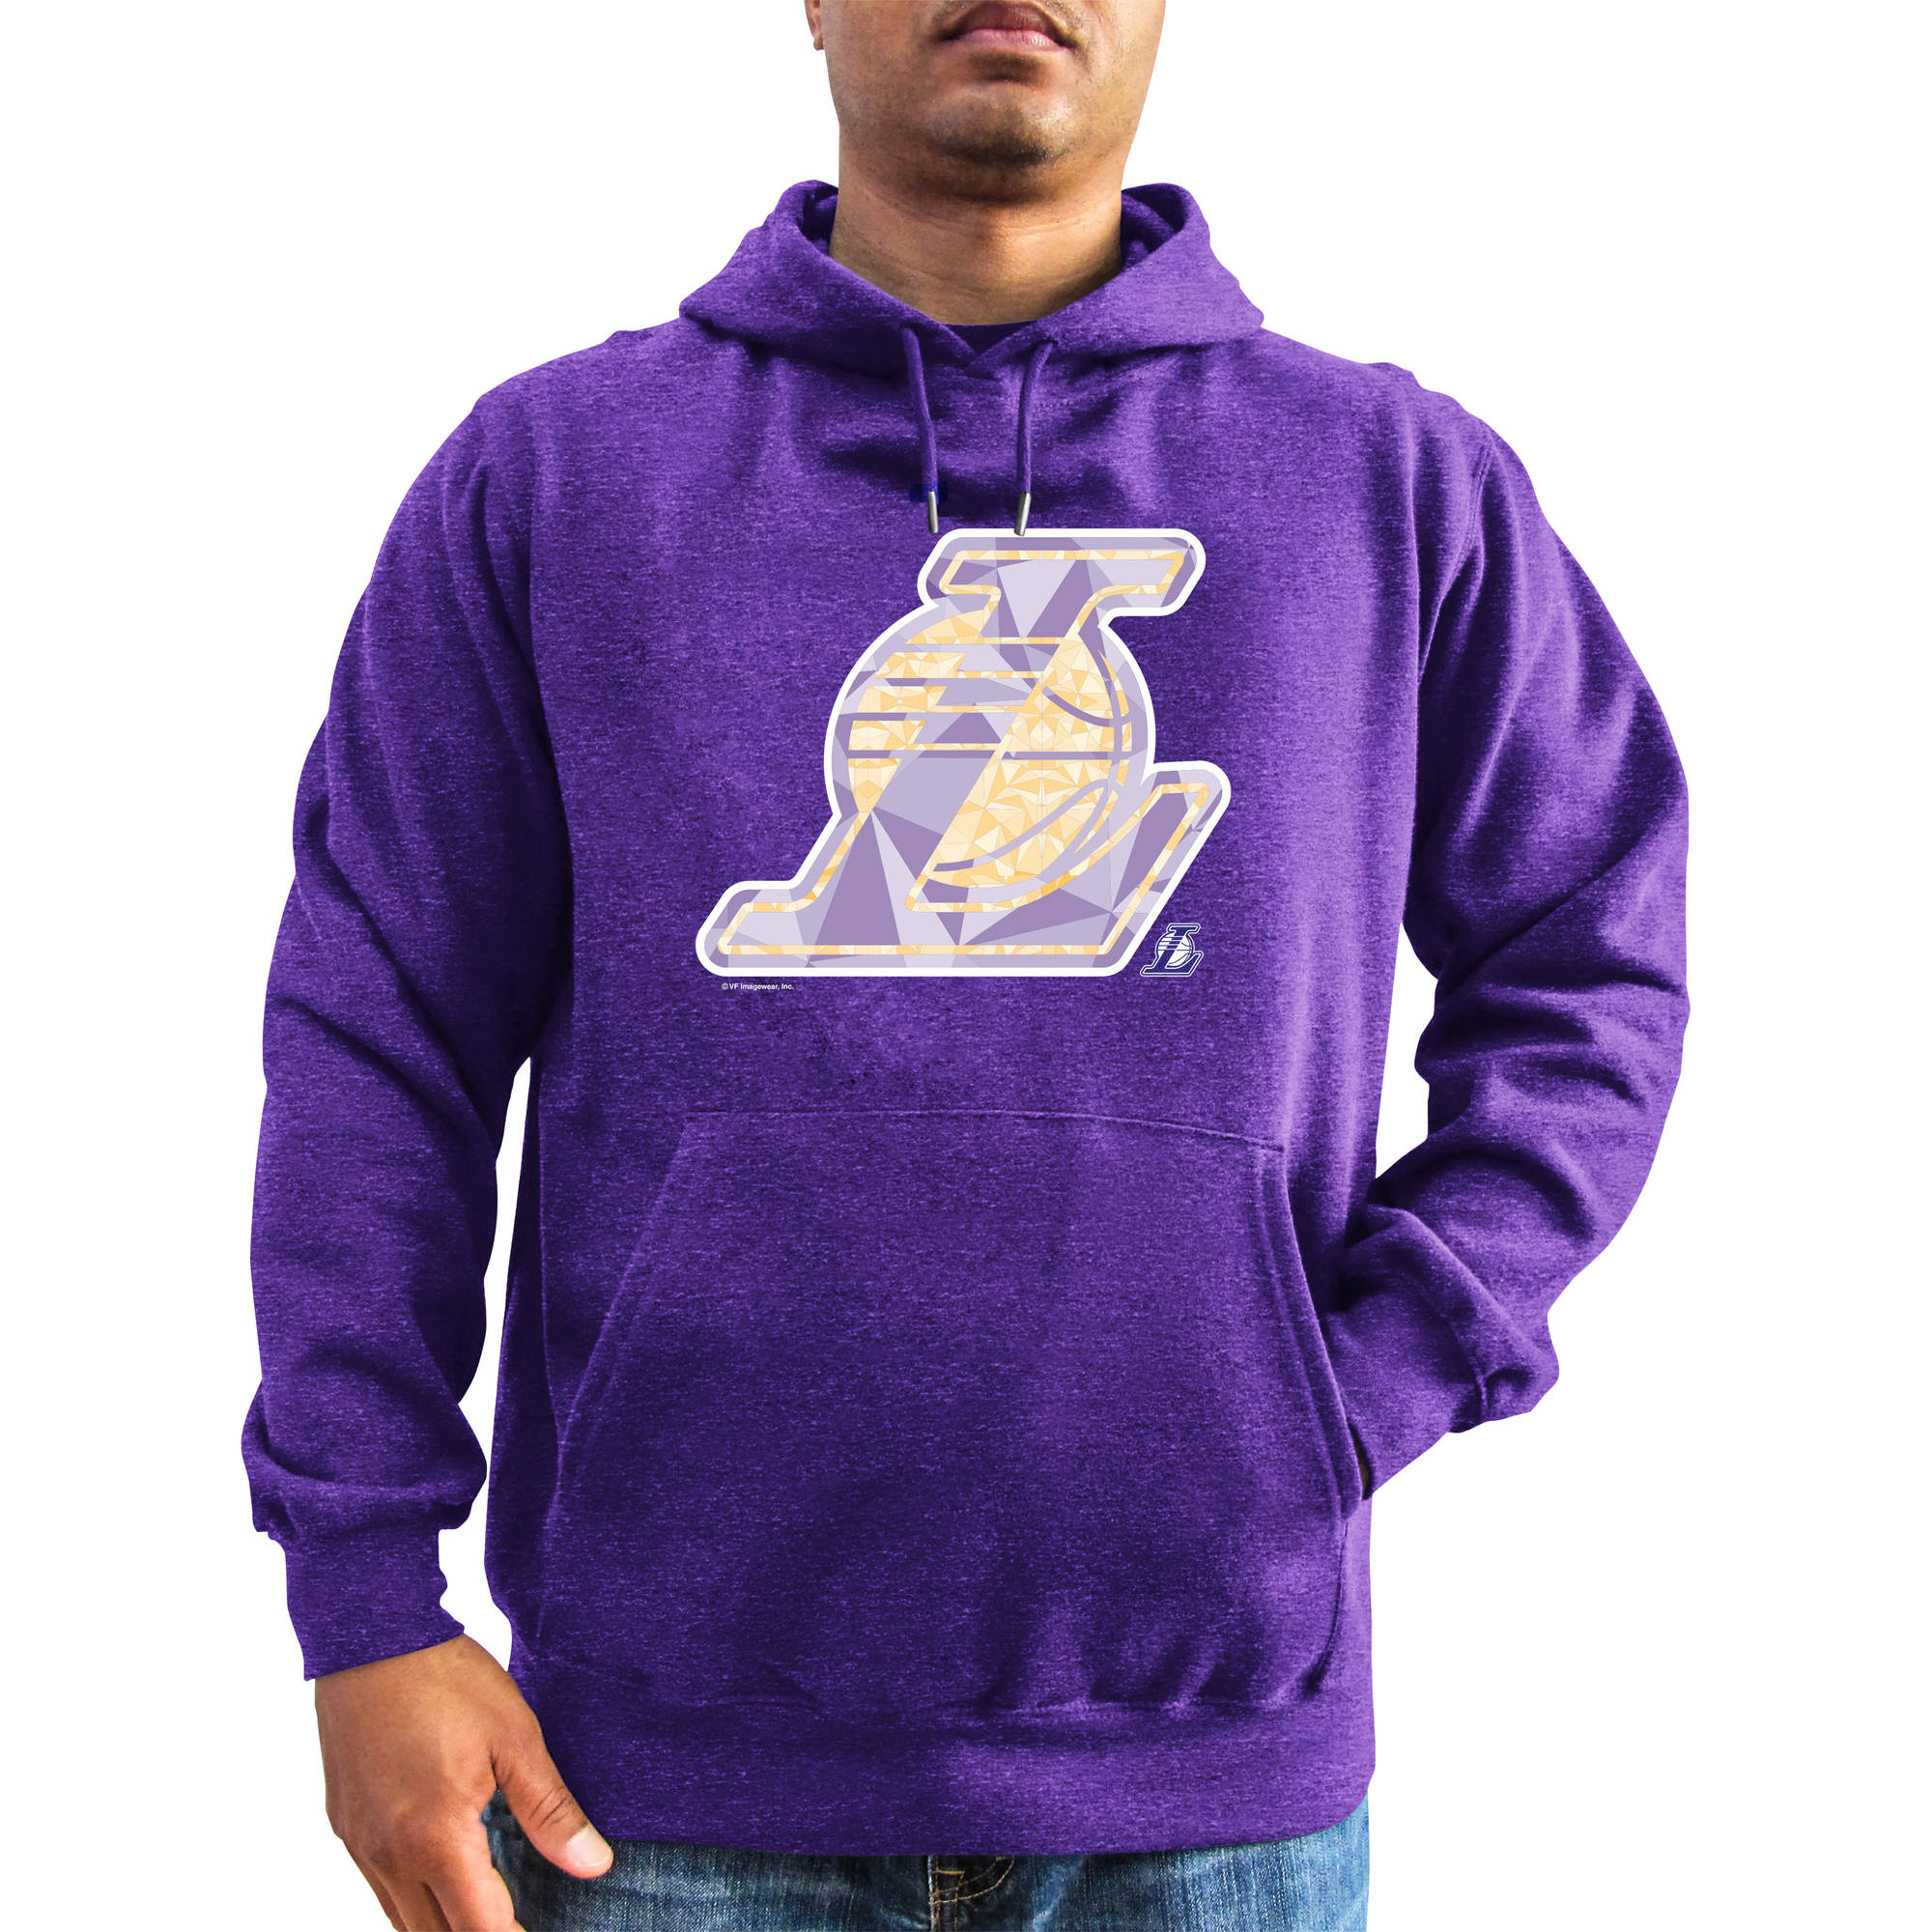 NBA Big Men's Los Angeles Lakers Hooded Fleece, 2XL